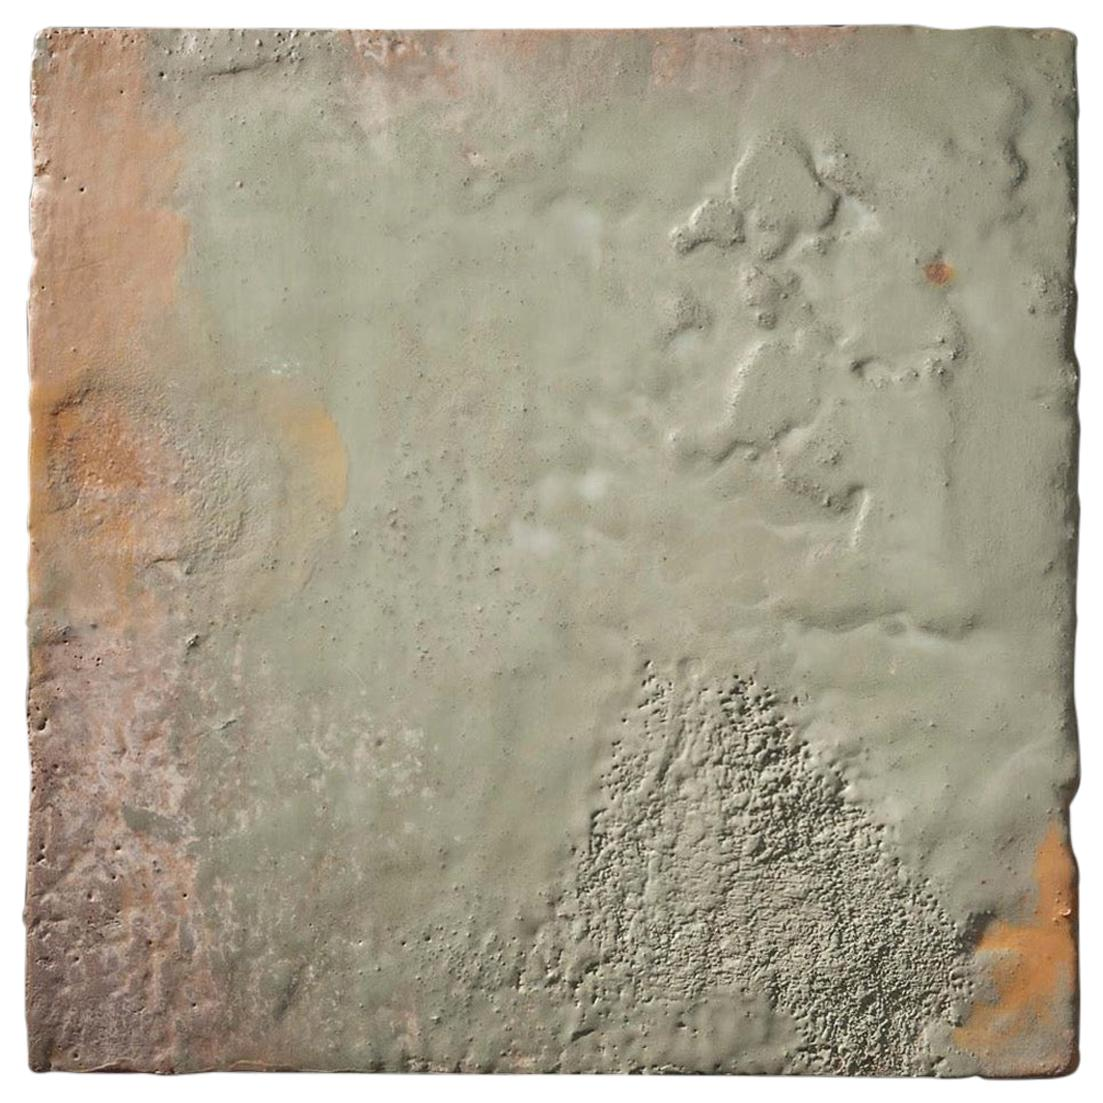 Richard Hirsch Encaustic Painting of Nothing, Painting of Nothing Series, 2013